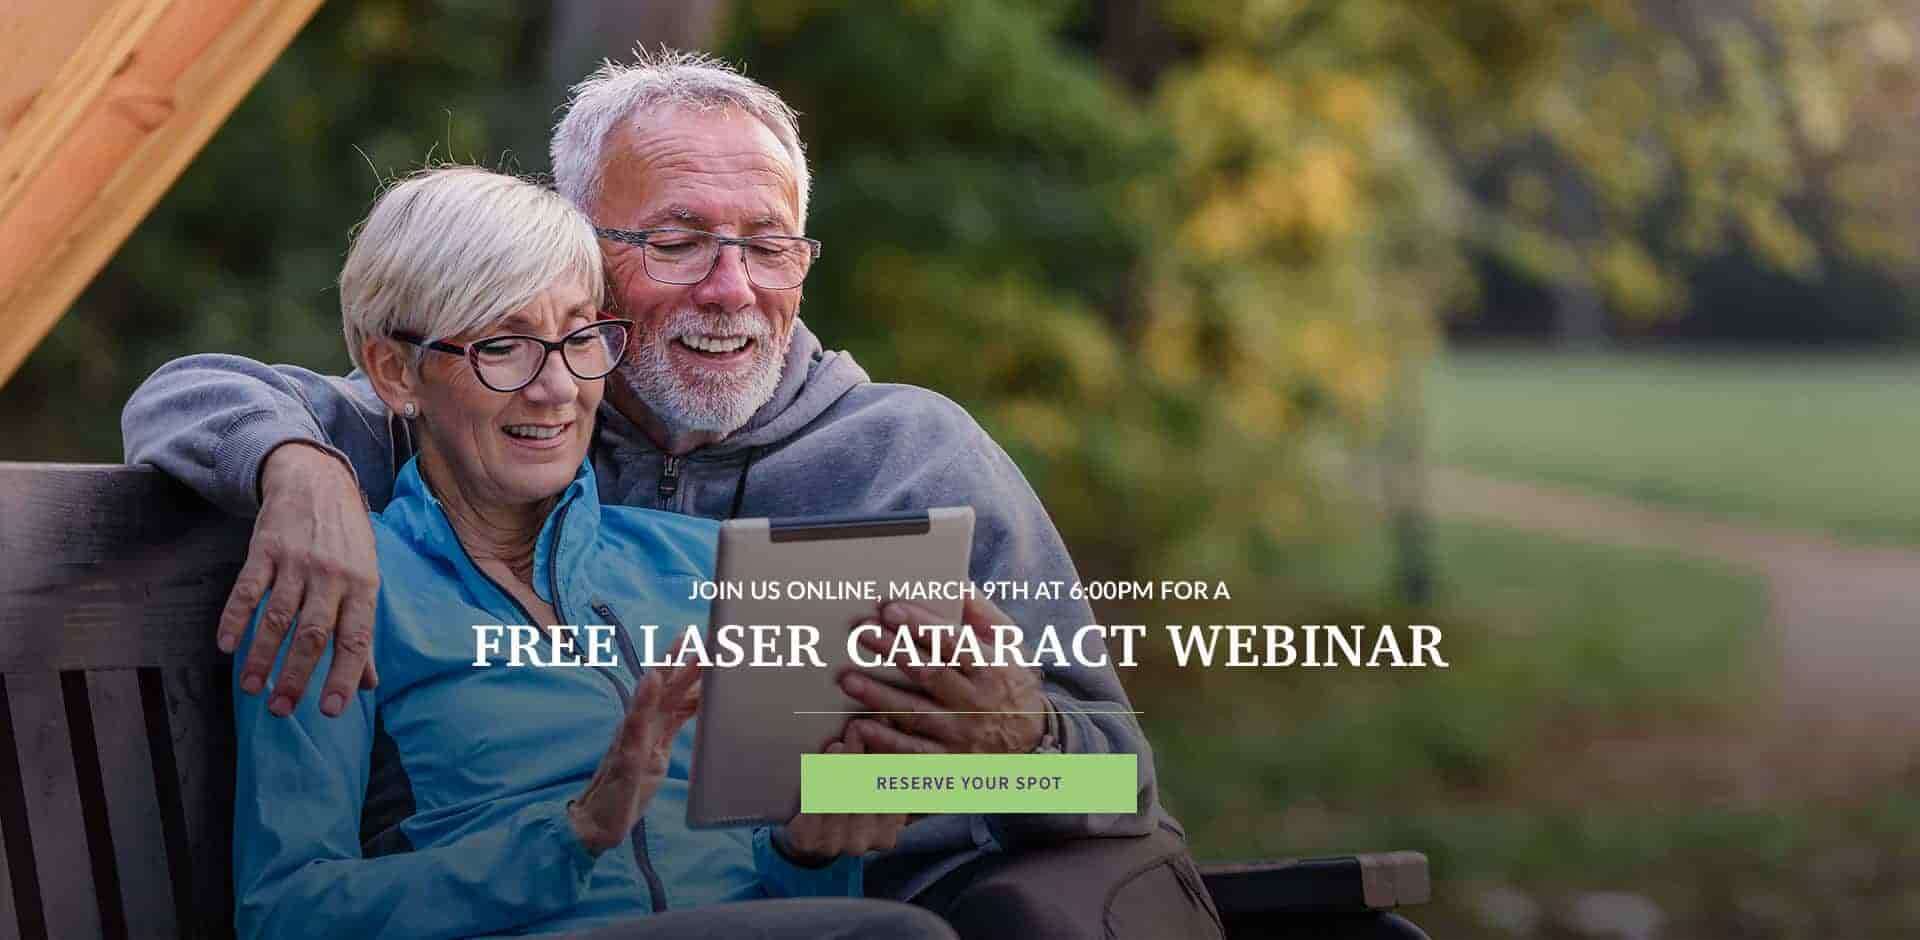 Join us online, March 9th at 6:00 for a Free Laser Cataract Webinar - reserve your spot